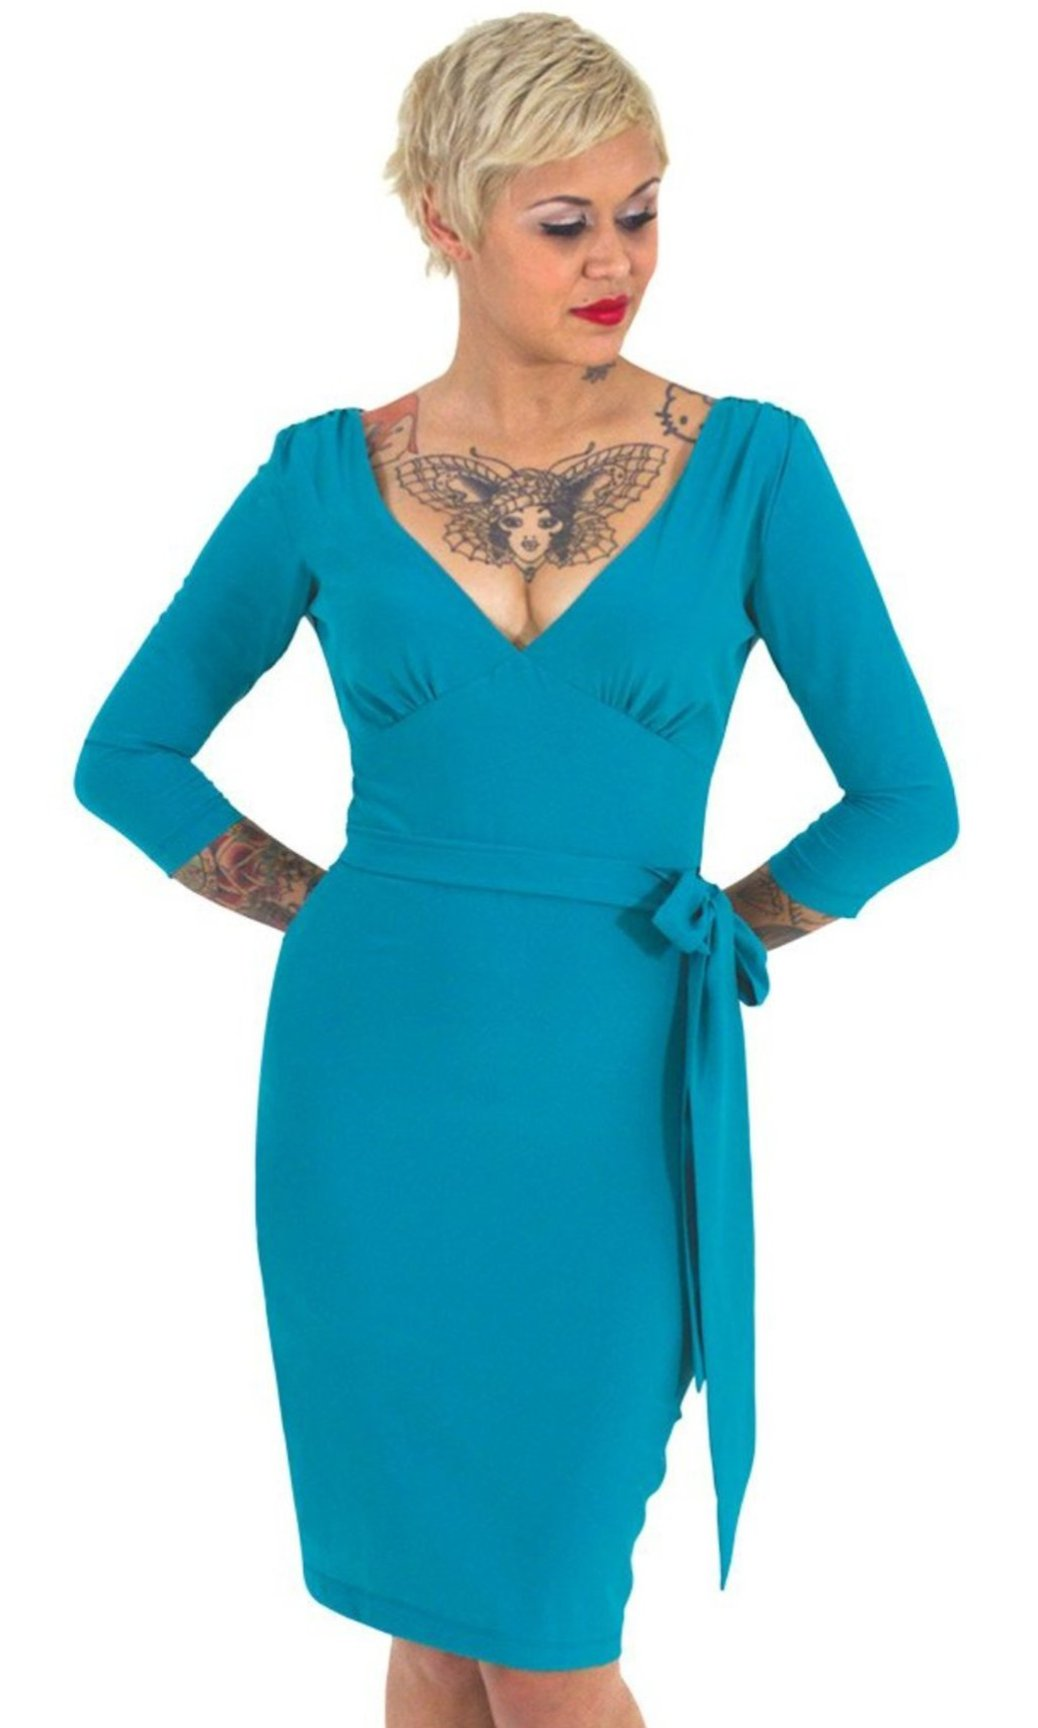 The AVA JADE Dress - 50% OFF!